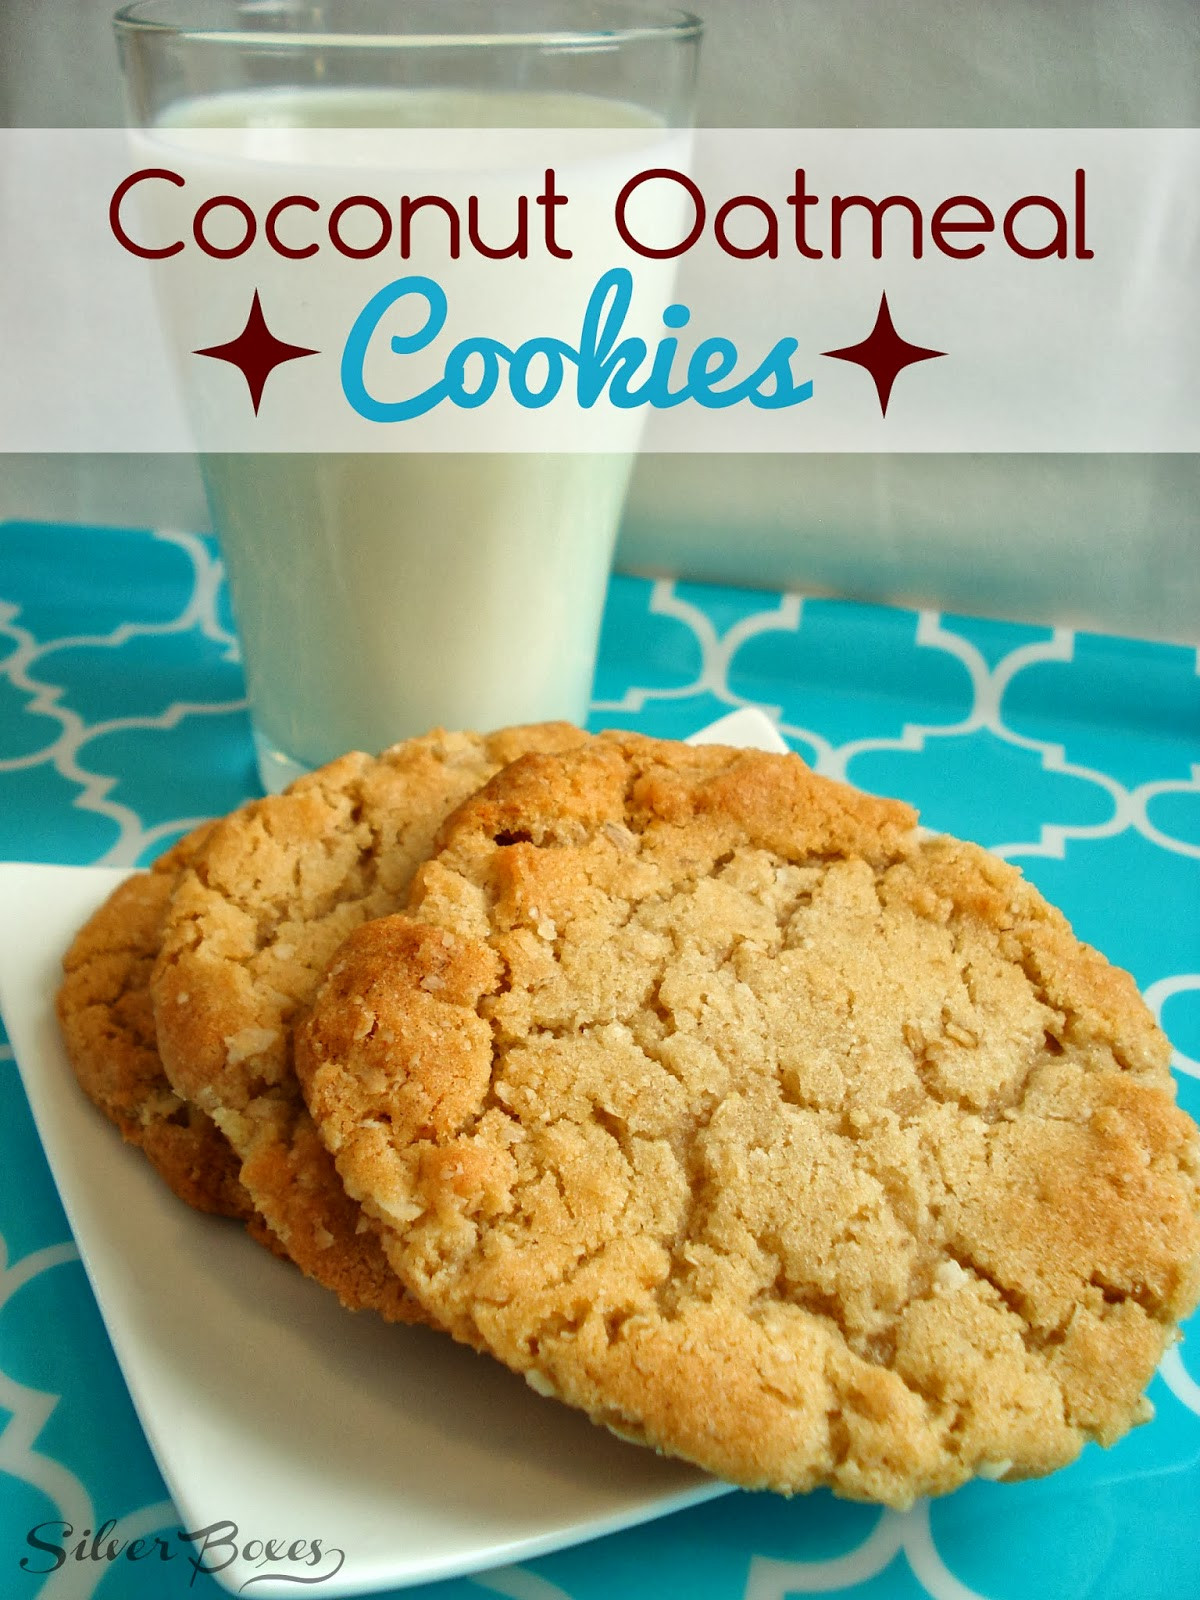 Coconut Oatmeal Cookies  Silver Boxes Coconut Oatmeal Cookies A Great Lunchbox